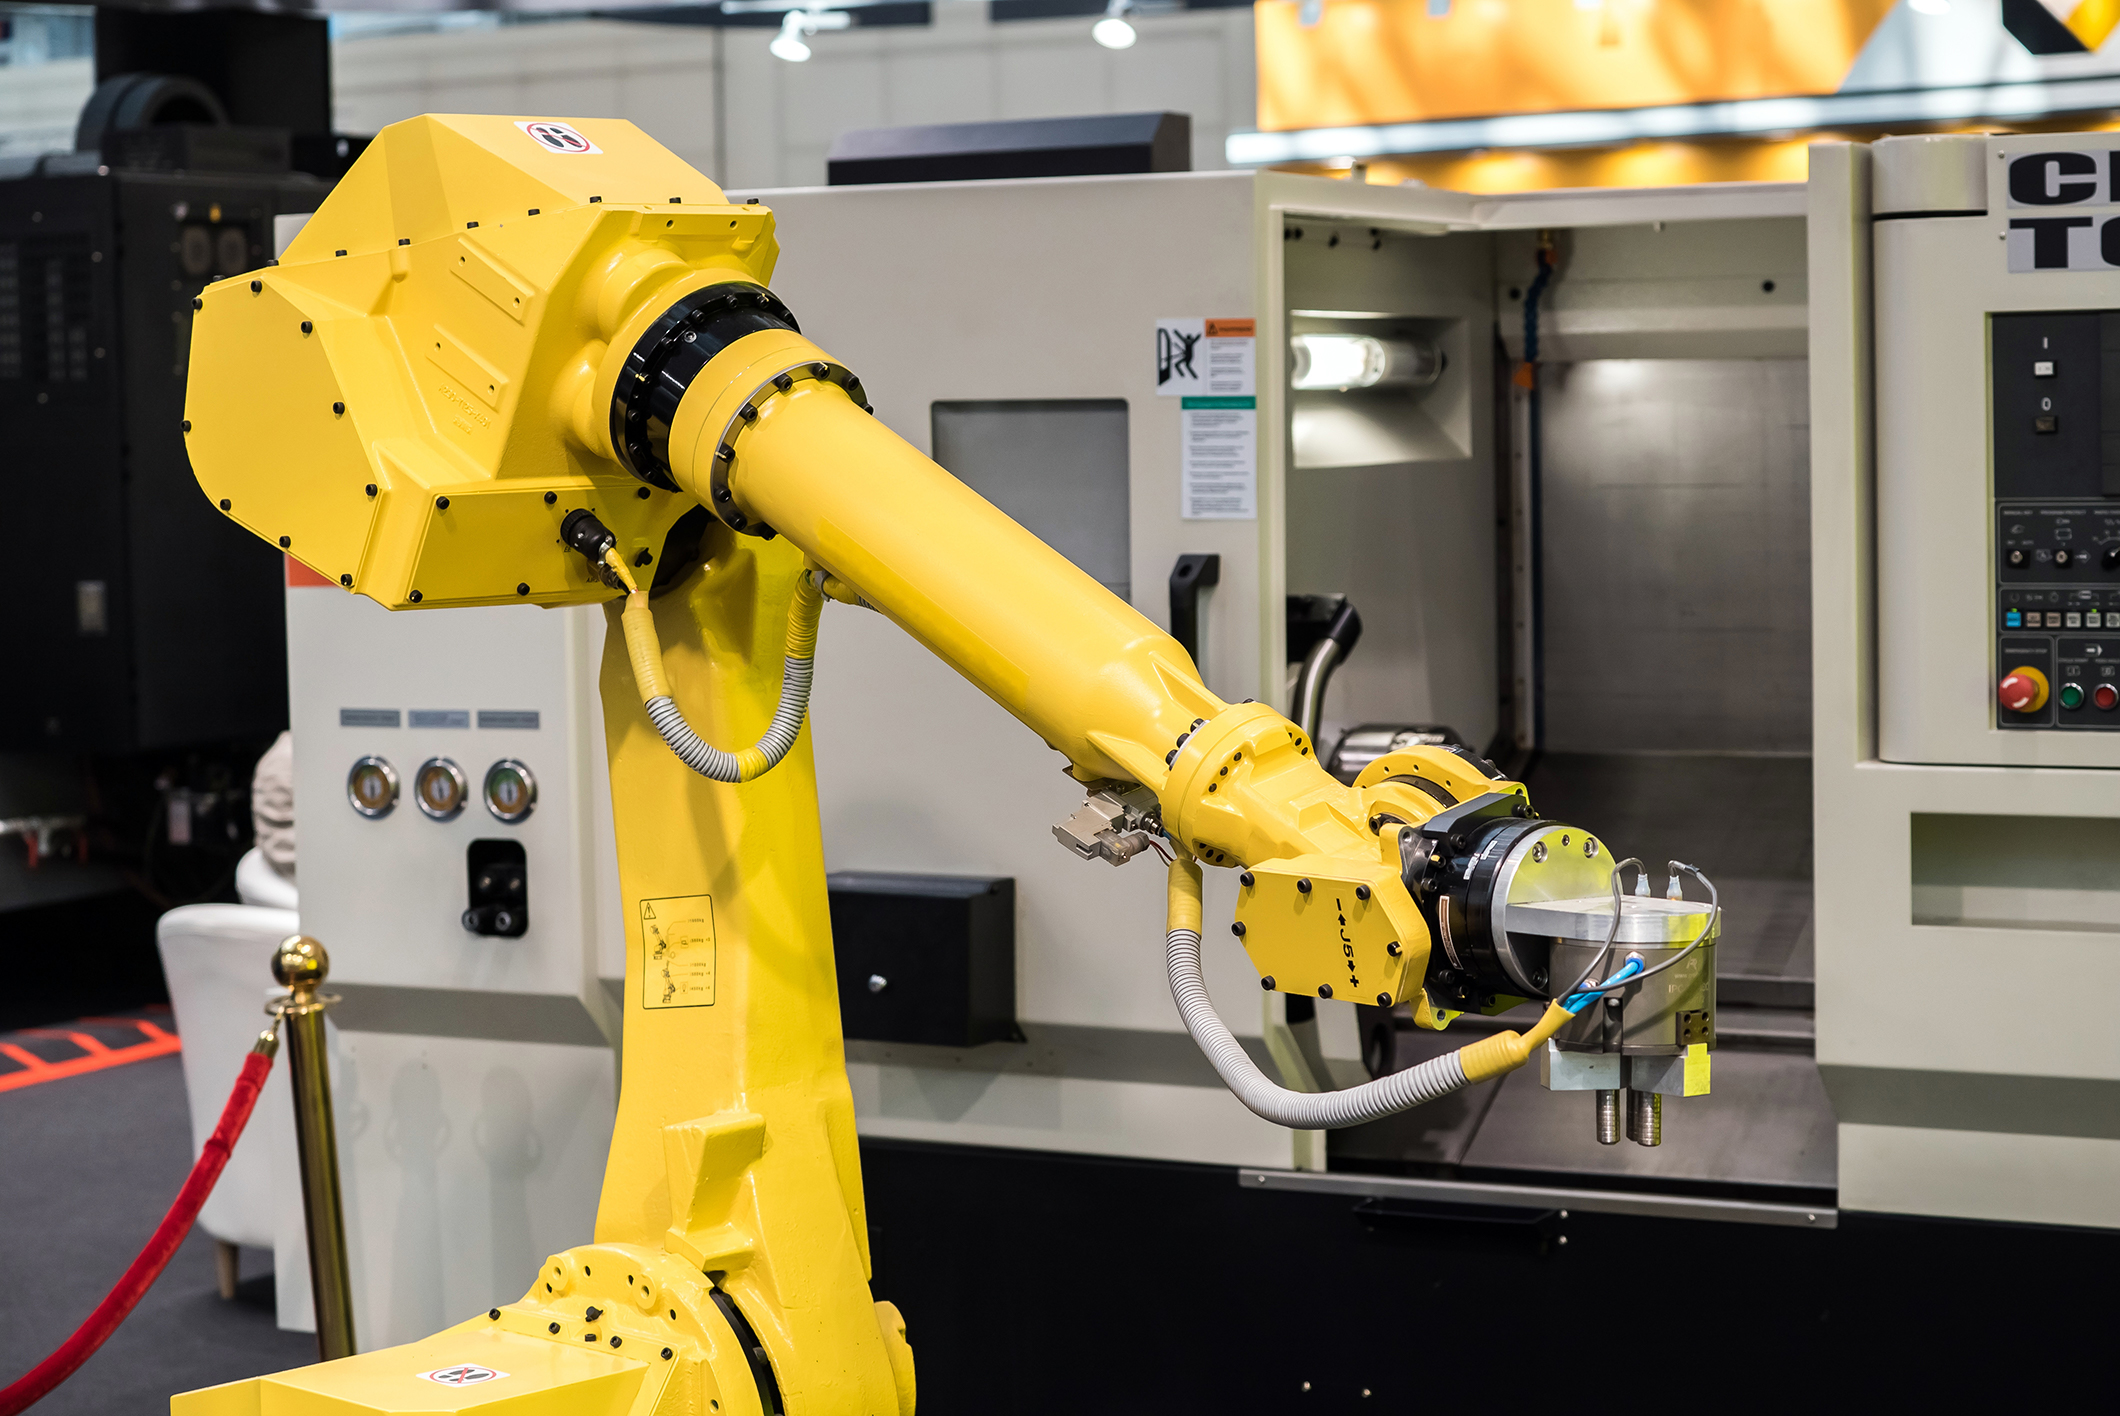 What are the Different Types of Industrial Robots and Their Applications?